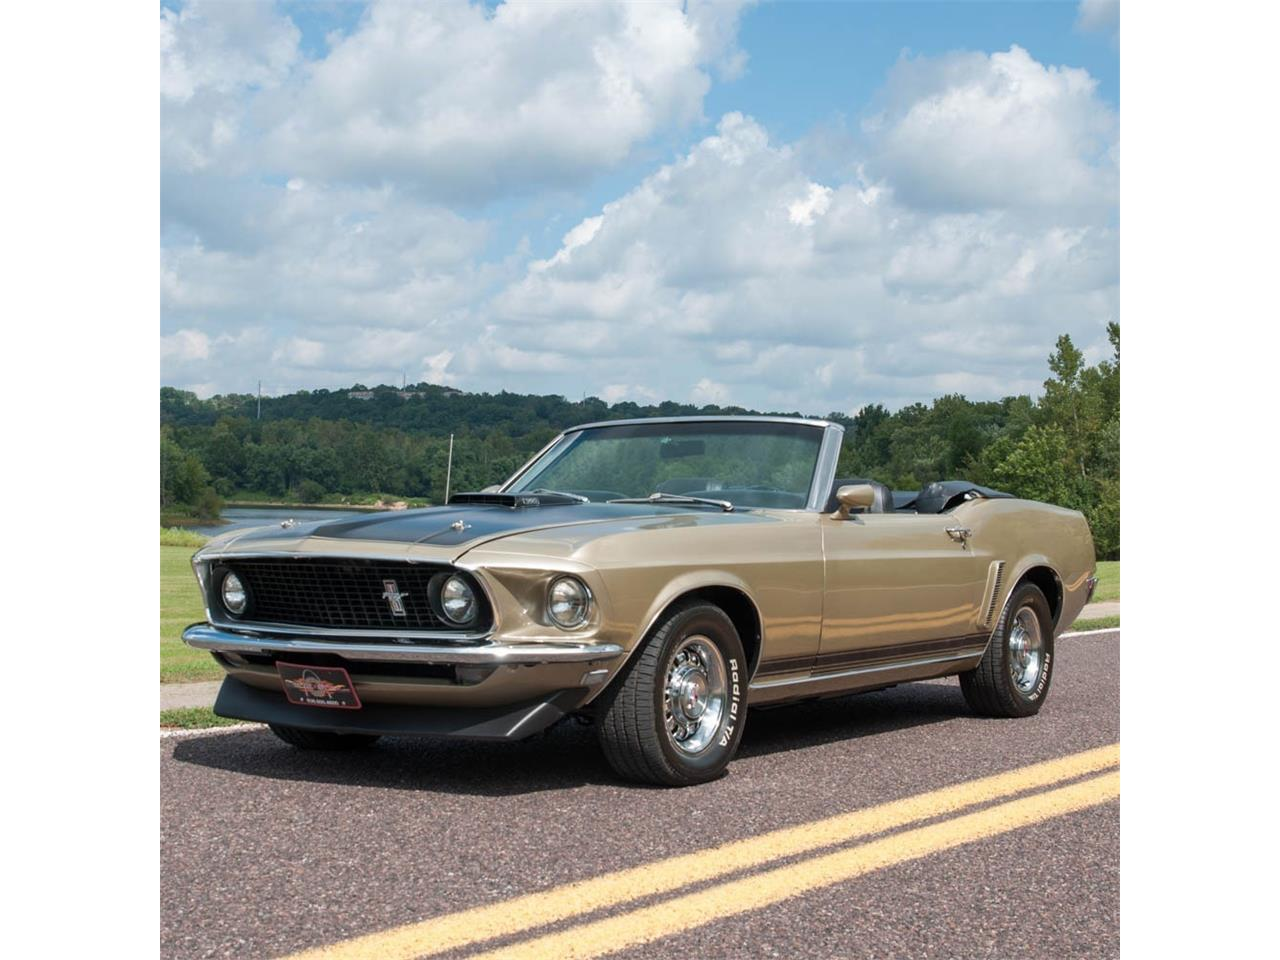 Large picture of 69 mustang s code jh22